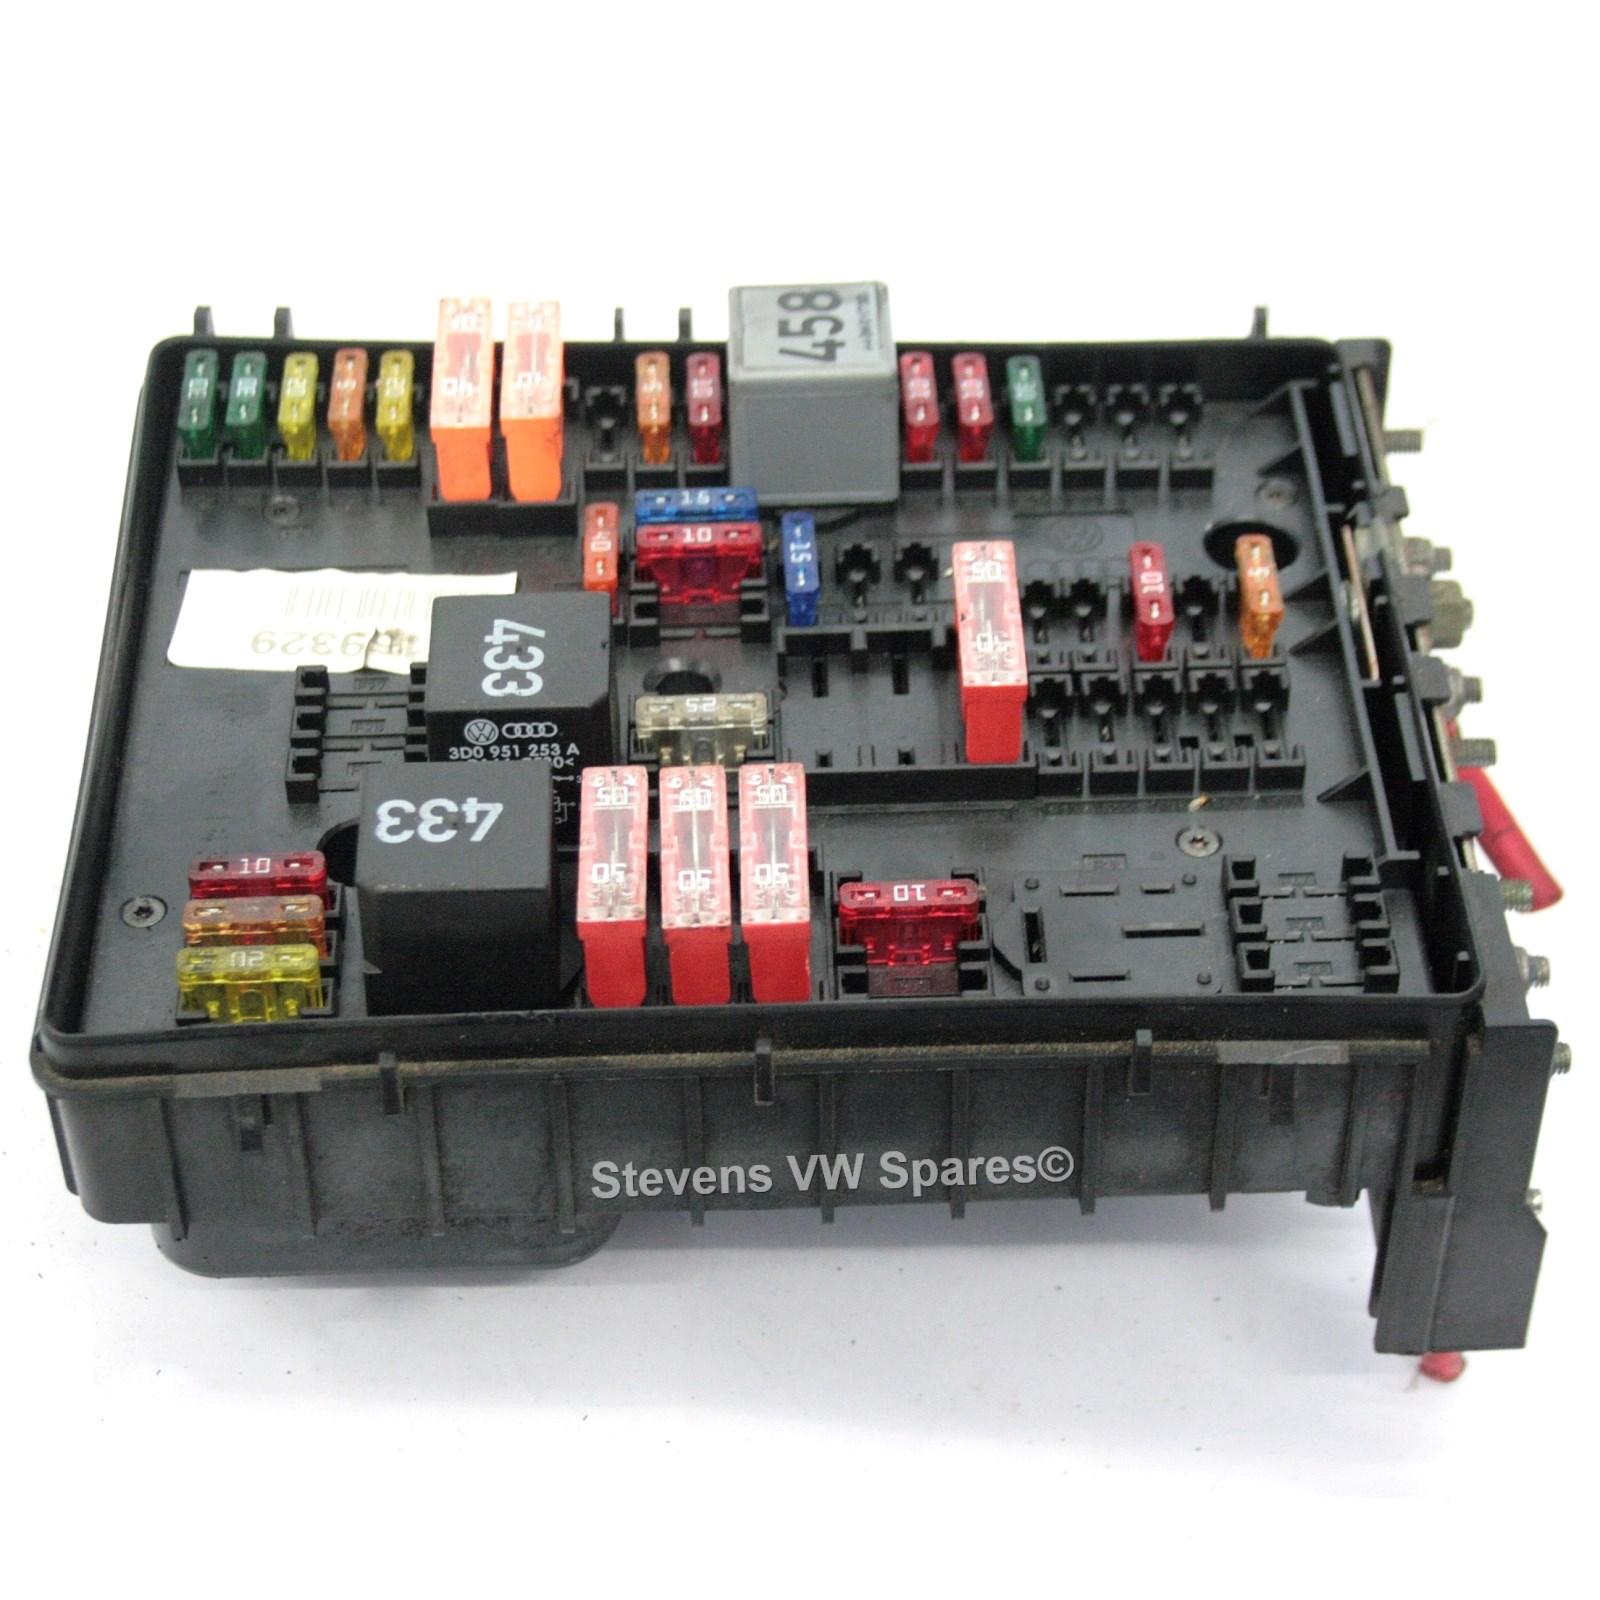 used genuine vw golf engine bay fuse box terminal 1k0 937 124 h Engine Main Fuse vw golf engine bay fuse box terminal�24 99